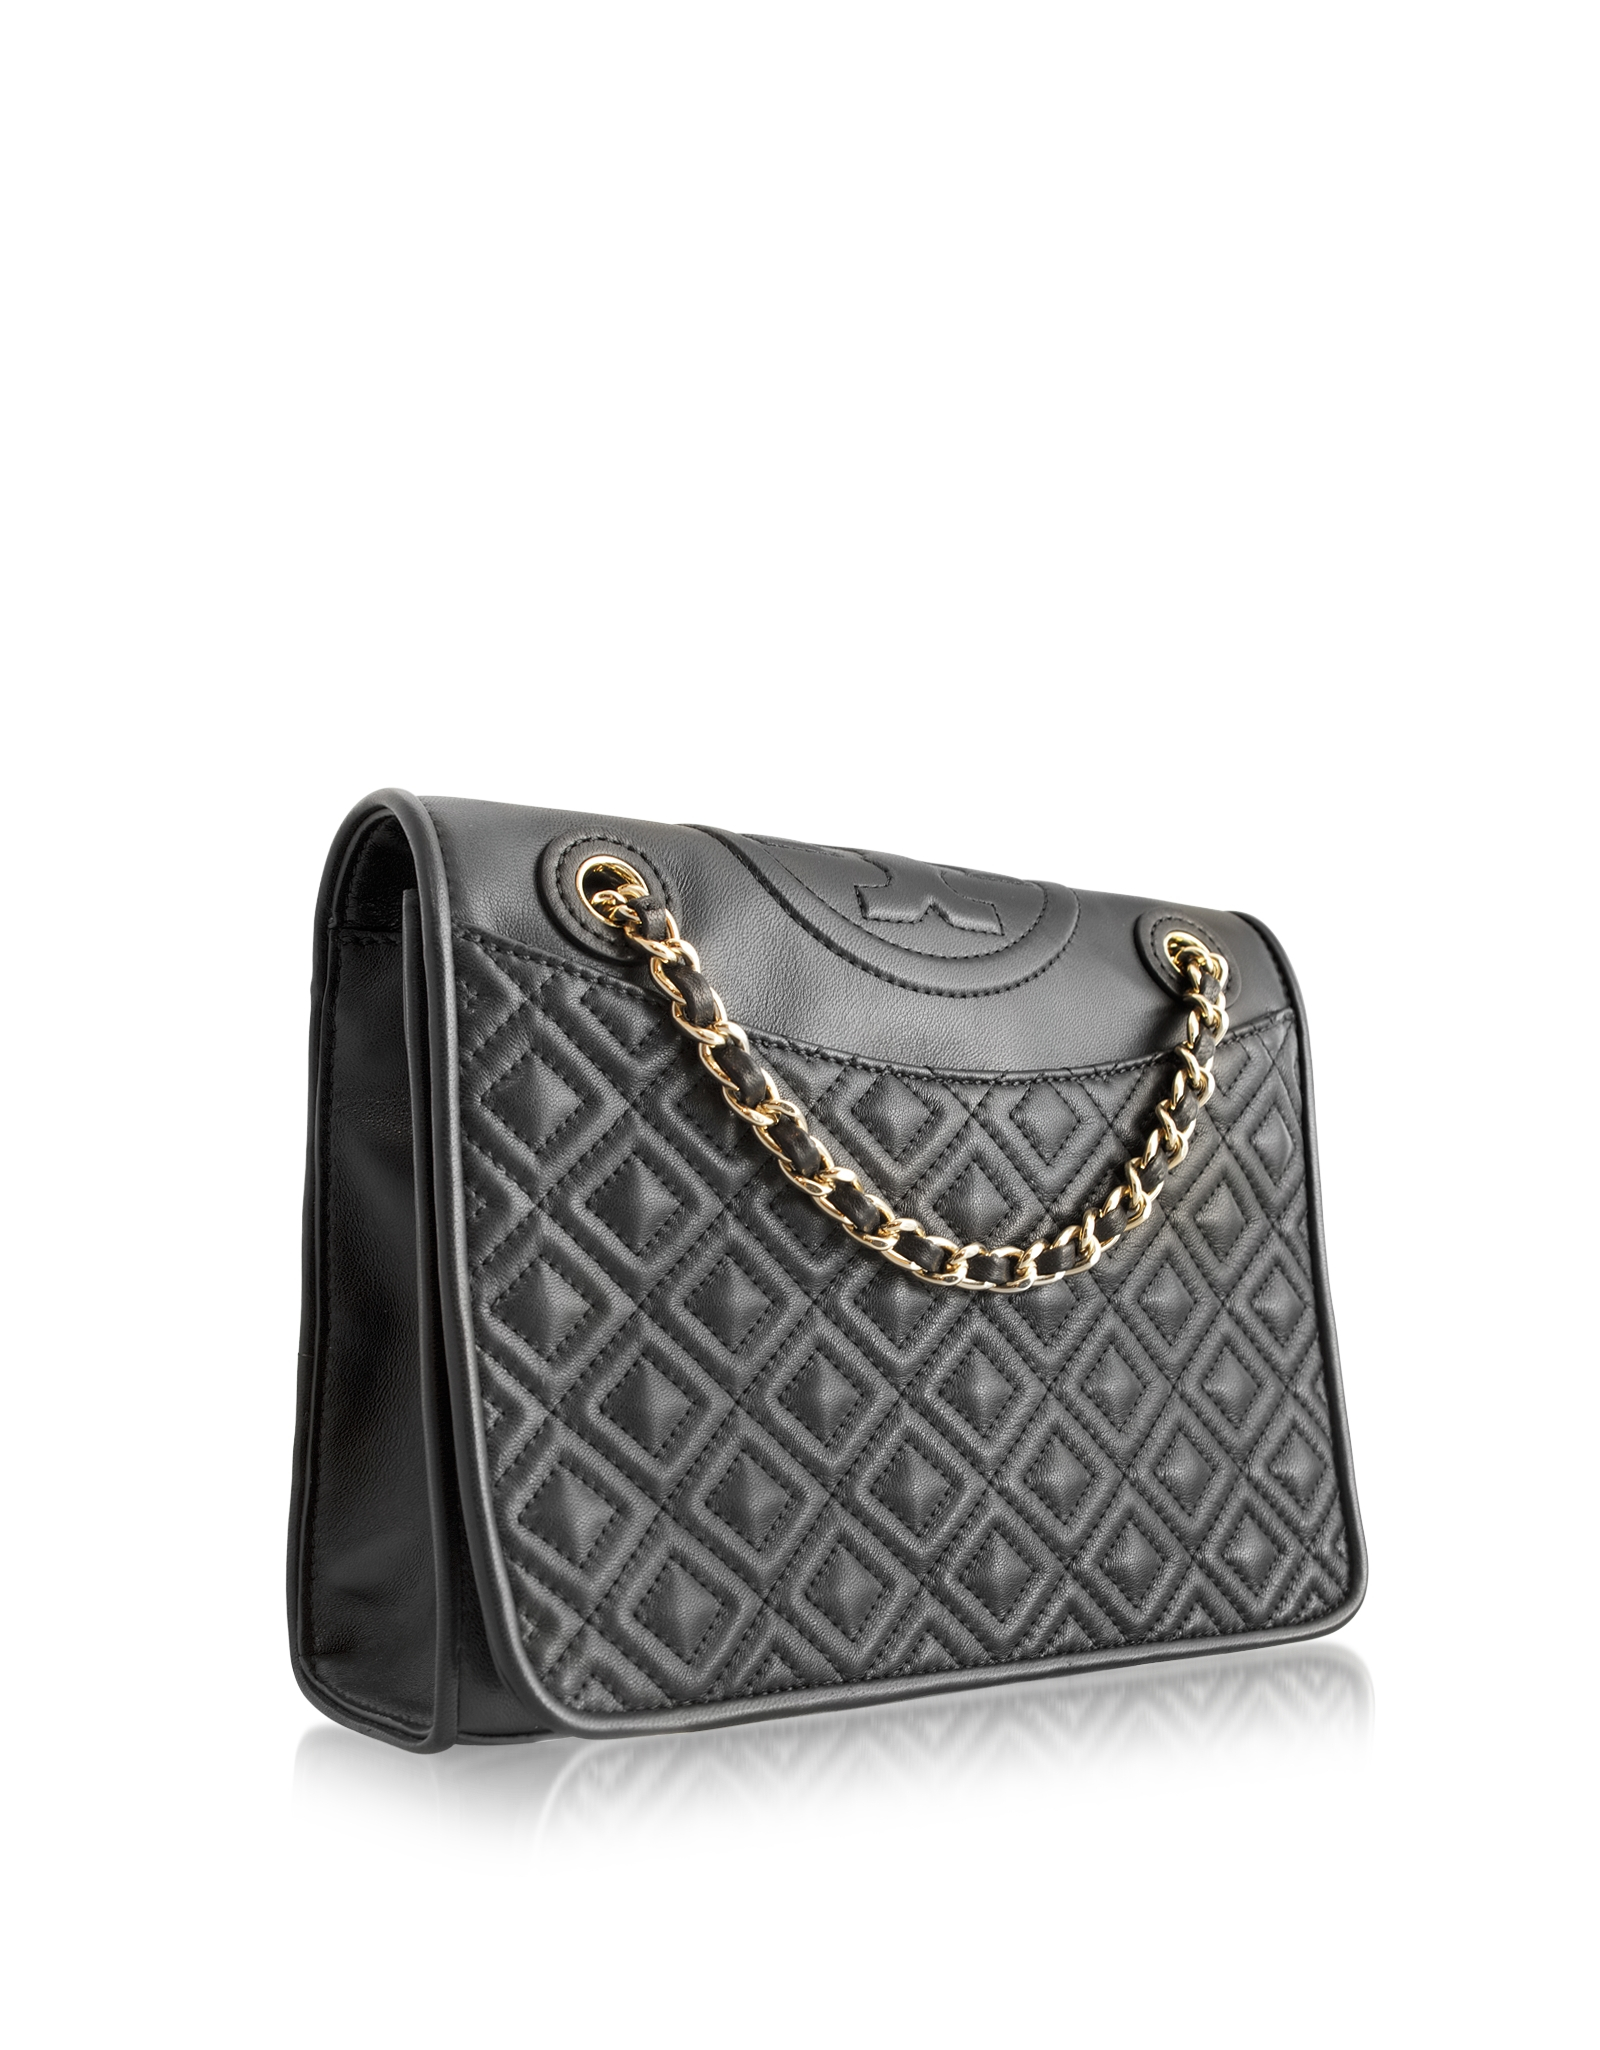 e05892d3025 Tory Burch Fleming Medium Quilted Smooth Leather Bag W/Chain in ...